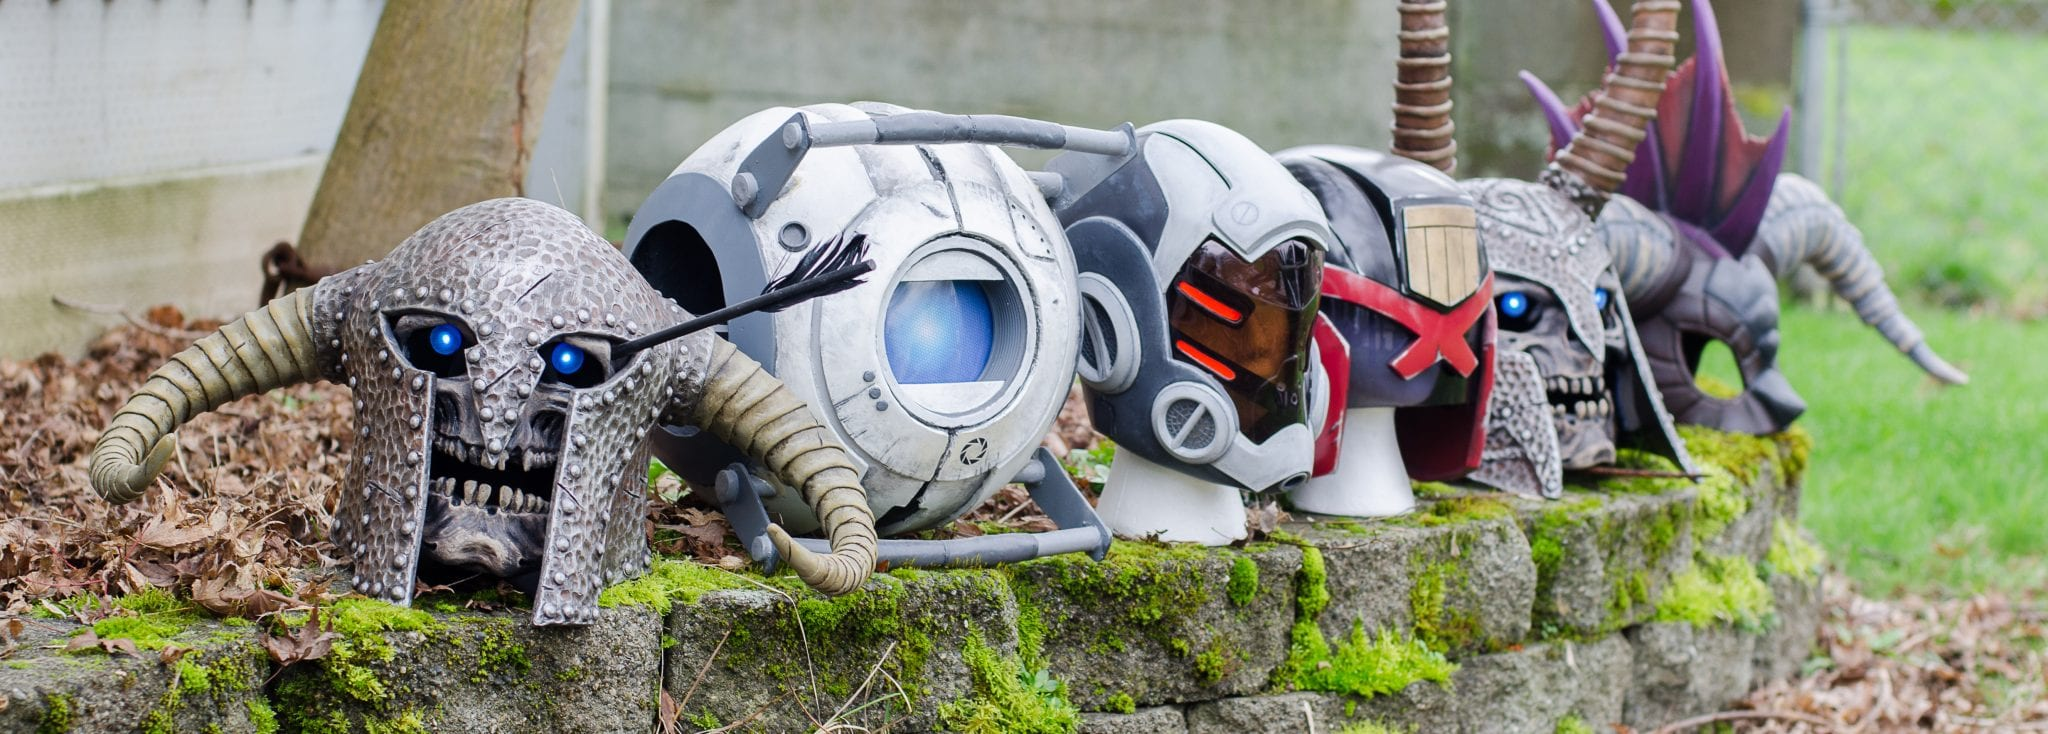 Mask Amp Helmet Cosplay Builds Punished Props